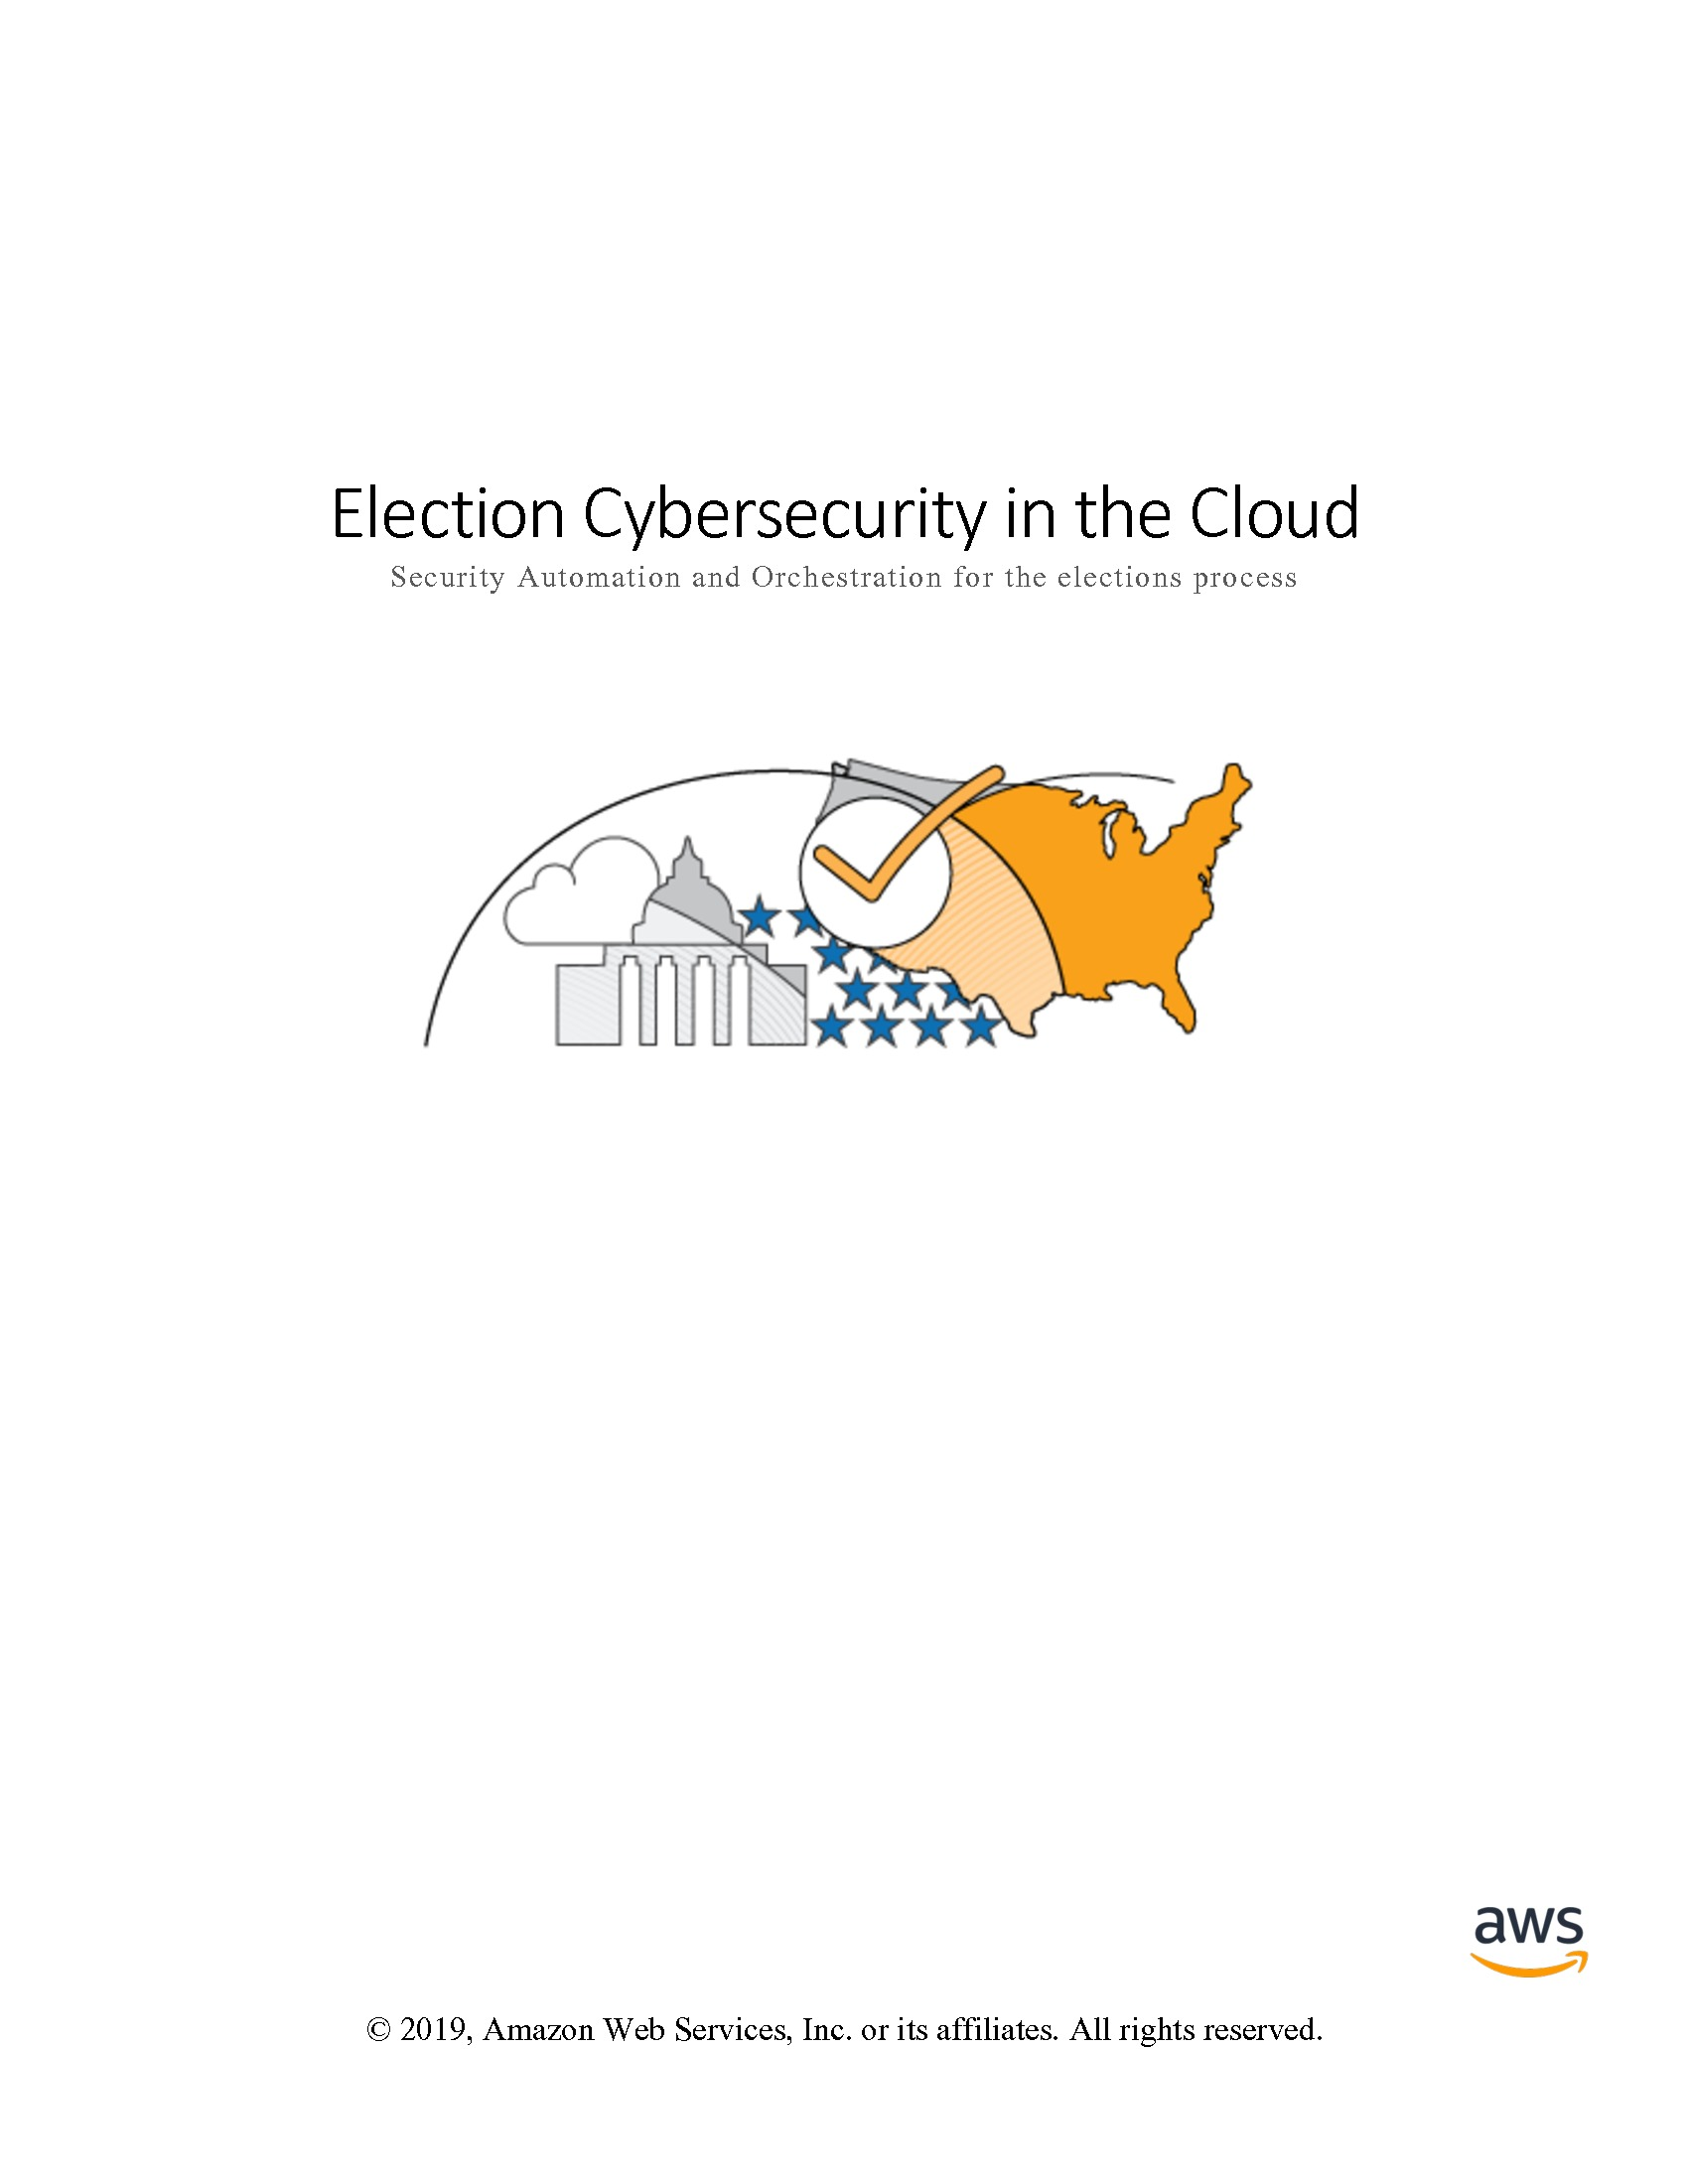 GOV - Amazon - 2019 Politics Channel - Election Cybersecurity in the Cloud